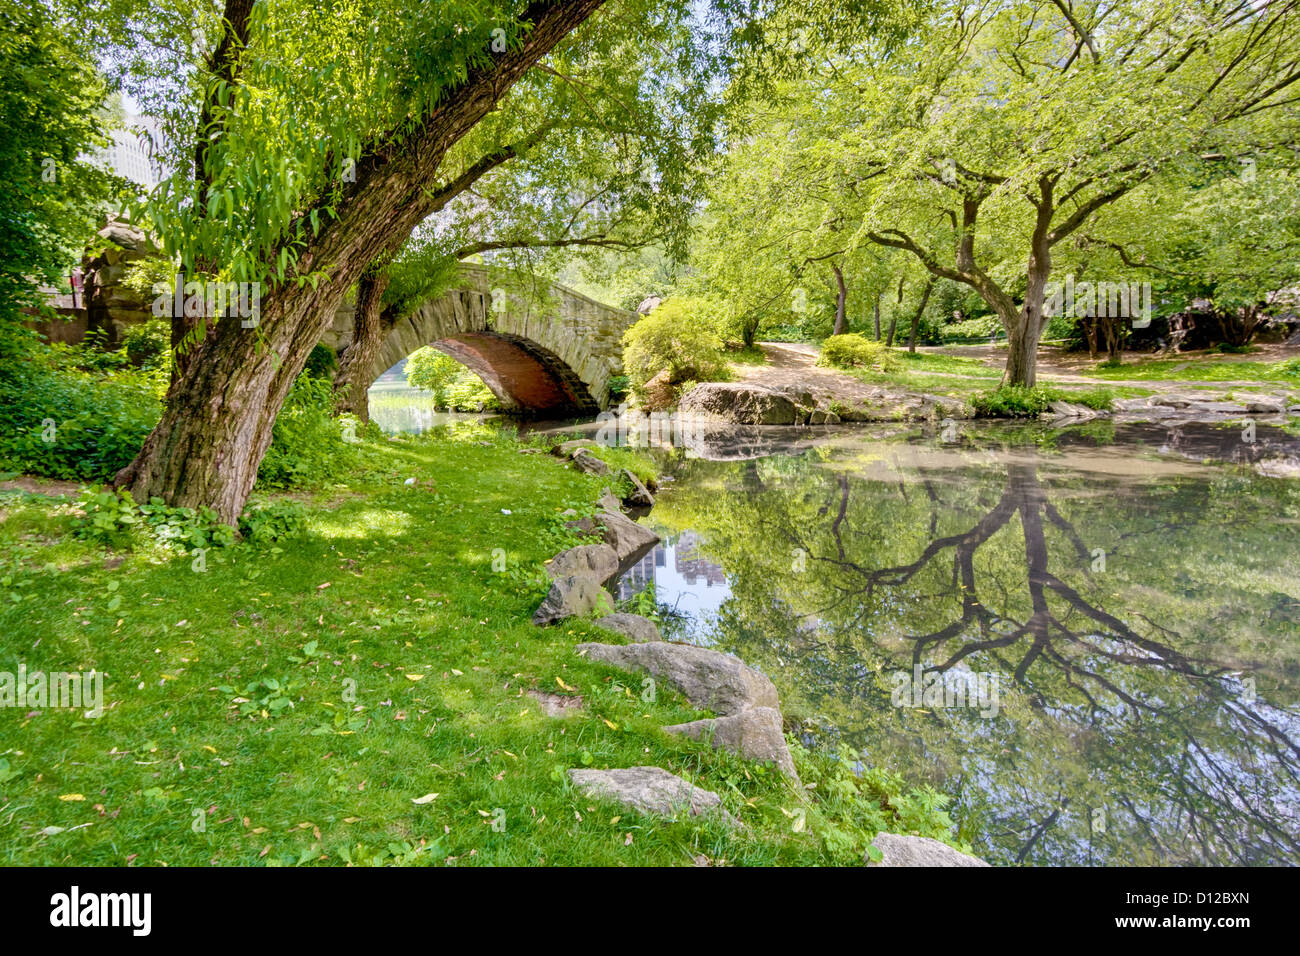 A stone bridge in Central Park, NY. There is a large tree and reflection in the pond that runs under the bridge. - Stock Image